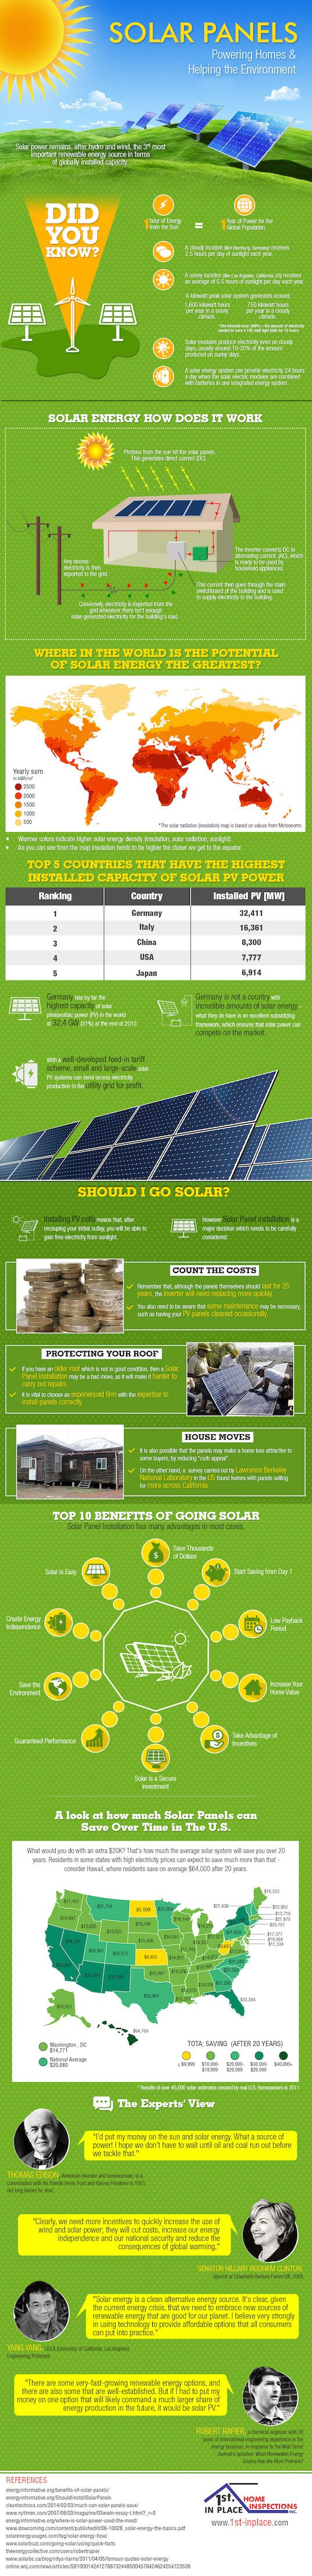 Infographic learn how solar panels work and the benefits for Benefits of going solar